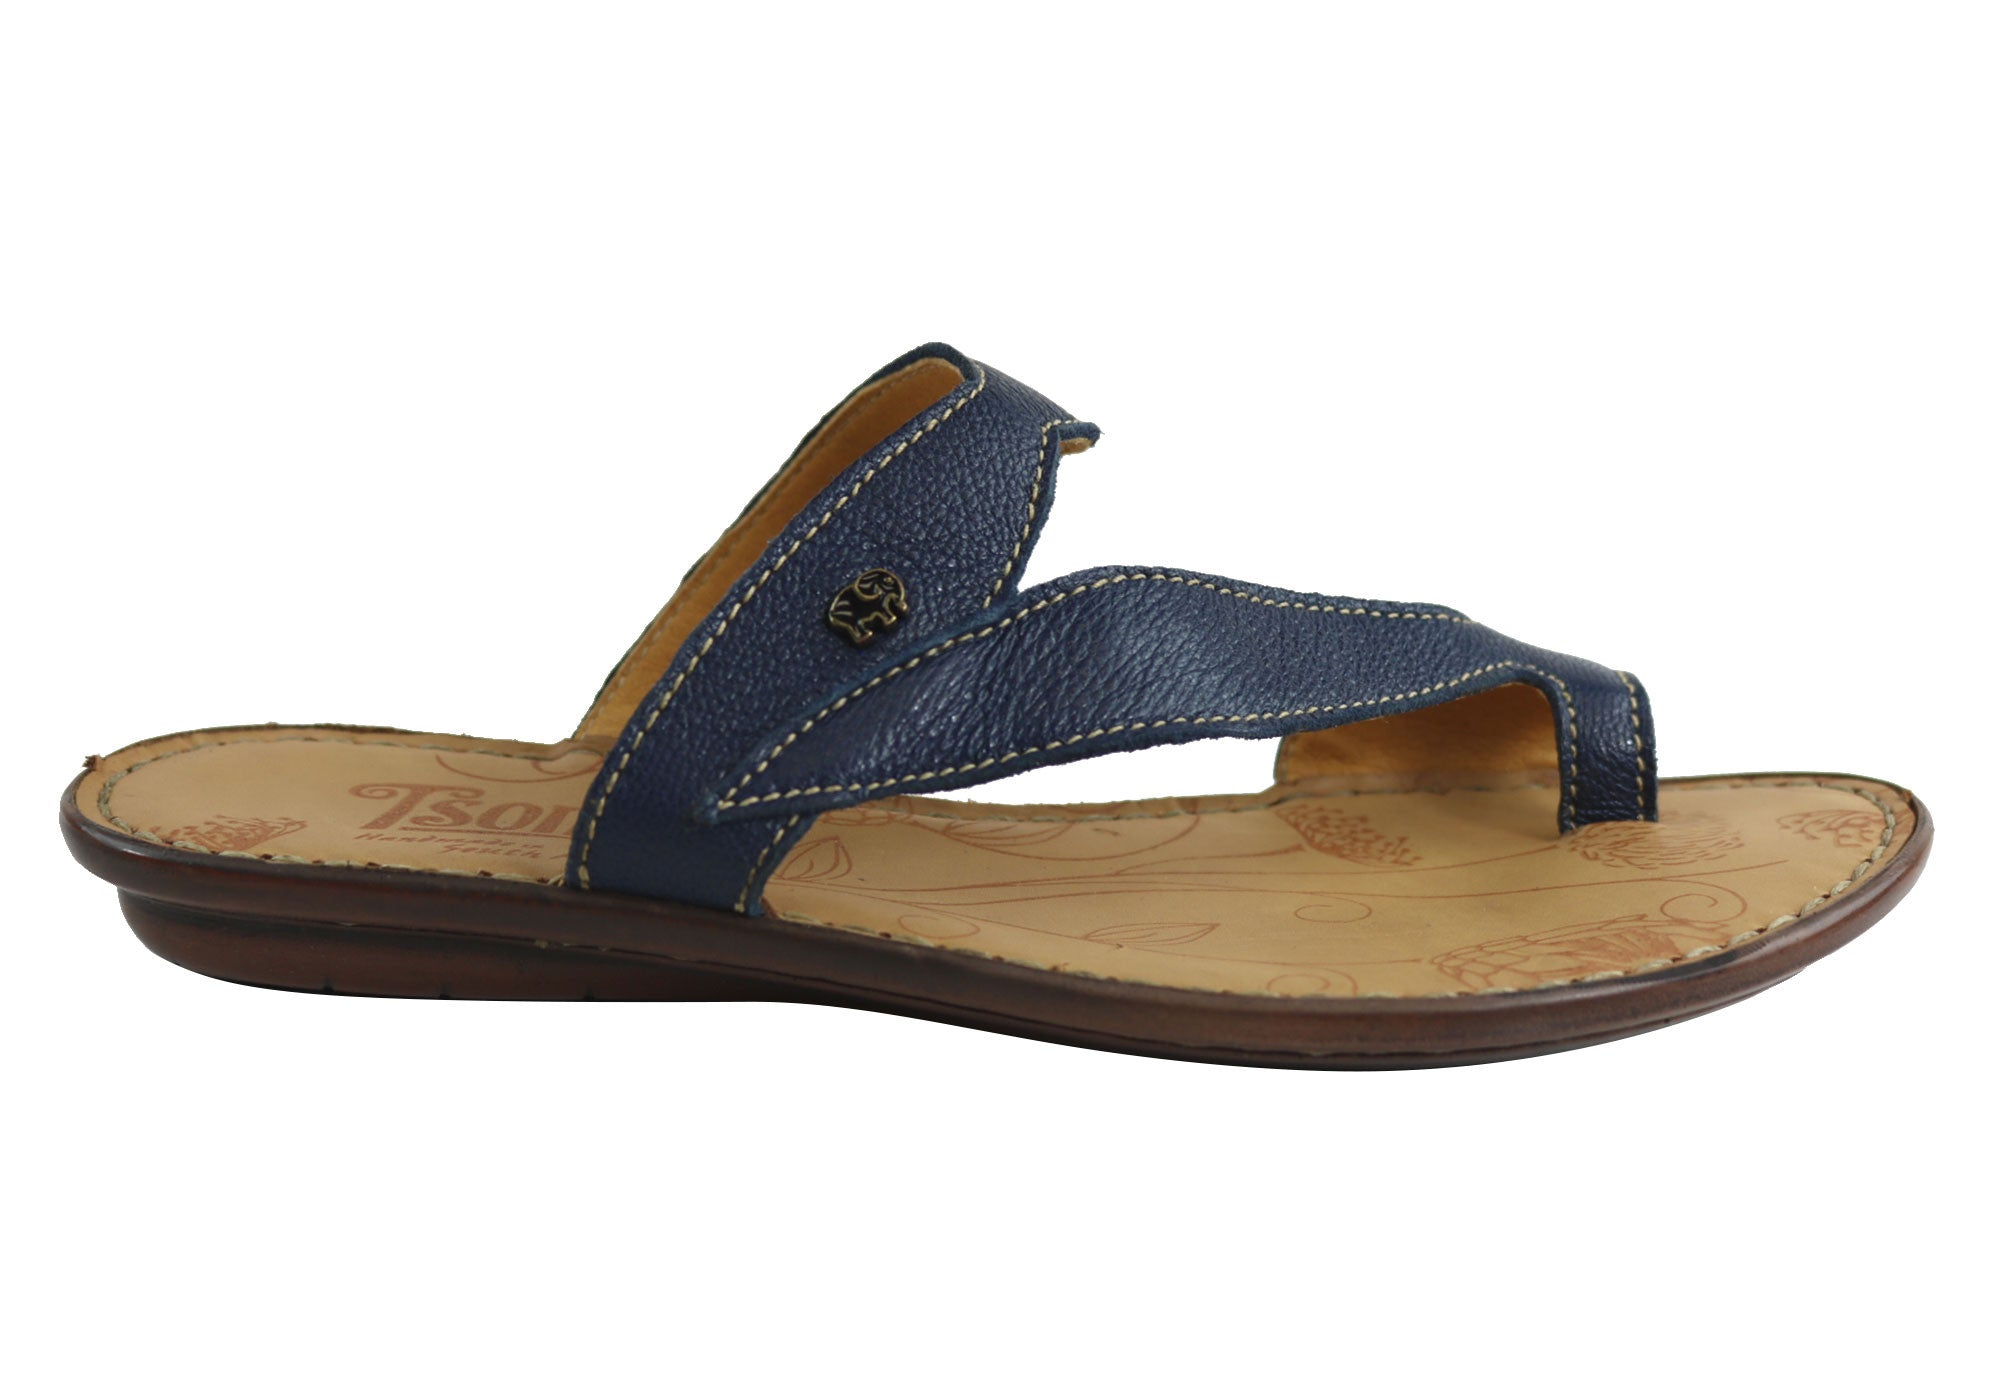 Details about Tsonga Elamela Womens Sandals Handmade In South Africa CushionedComfortable S